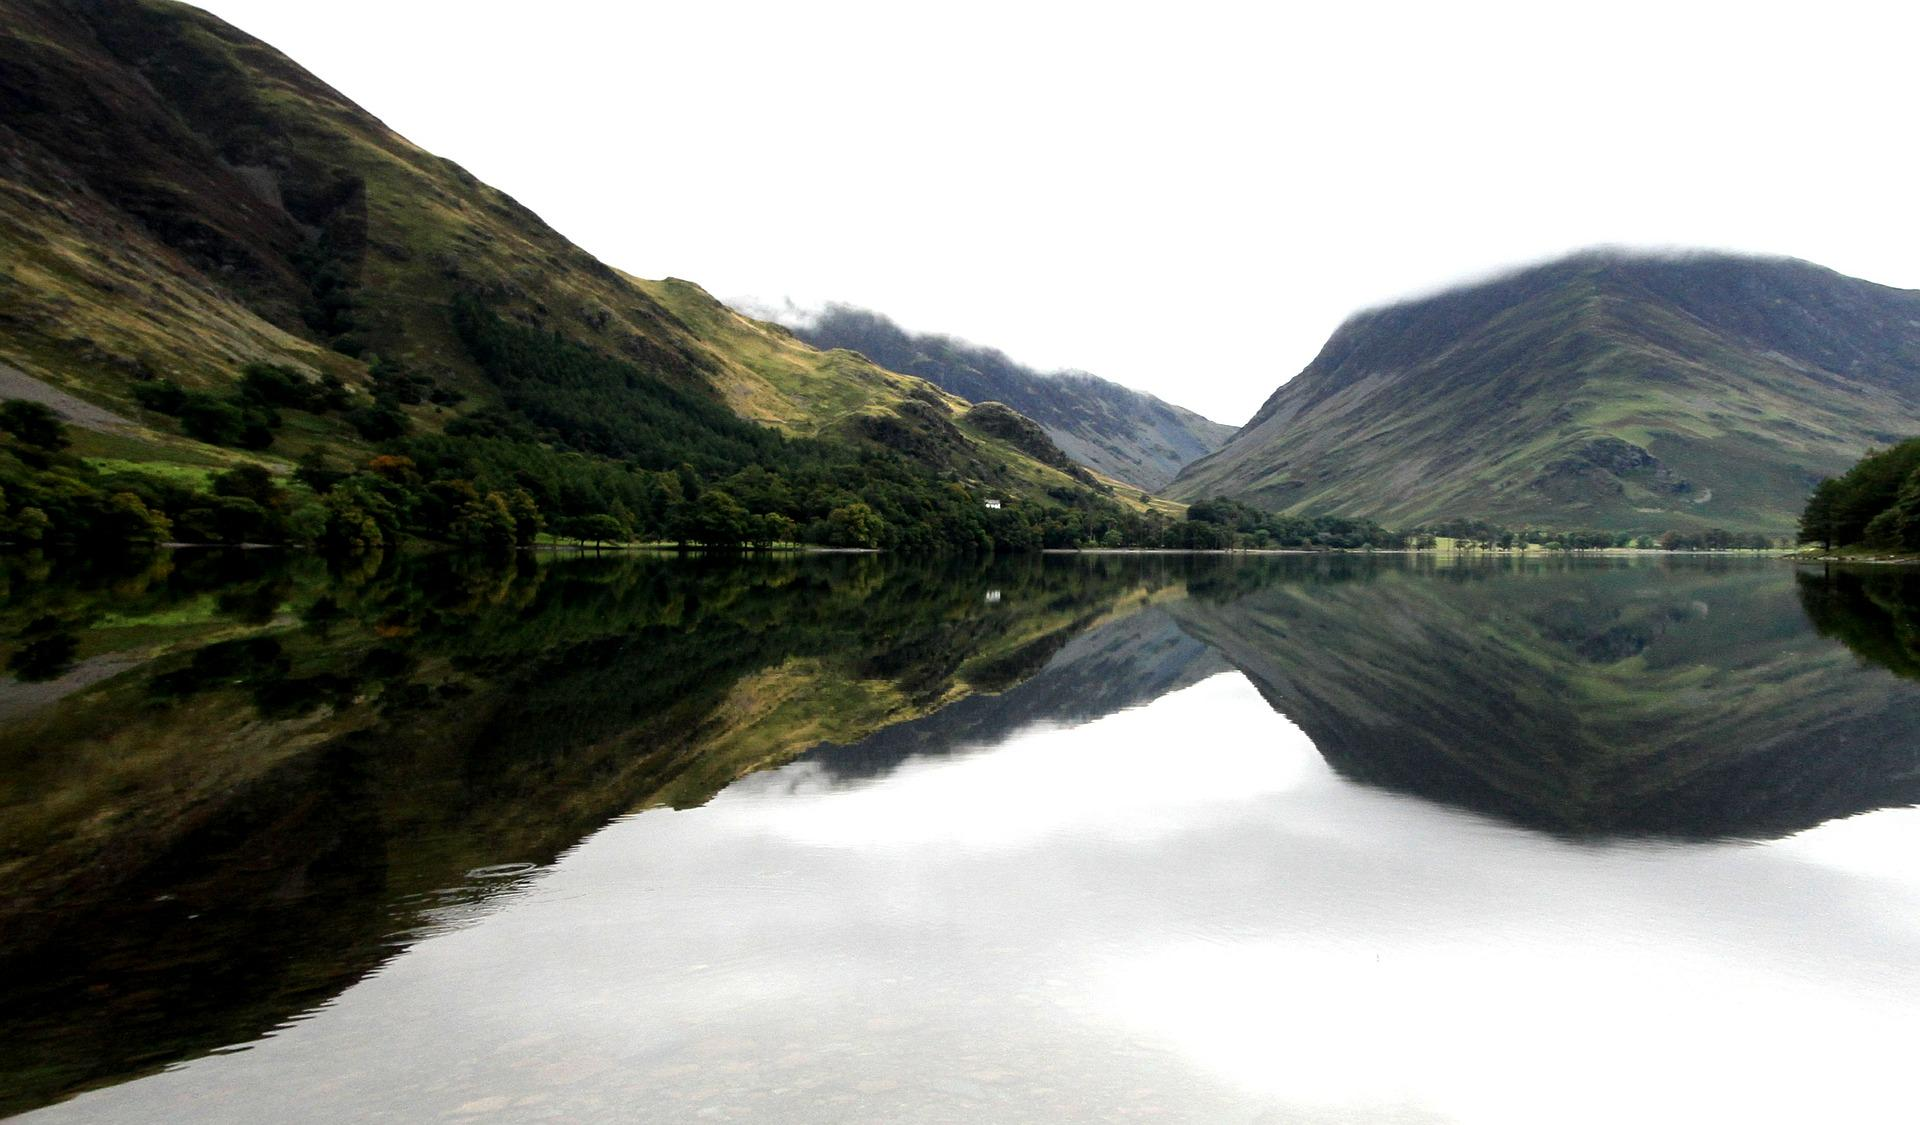 Buttermere Camping – The best campsites in Buttermere, Lake District